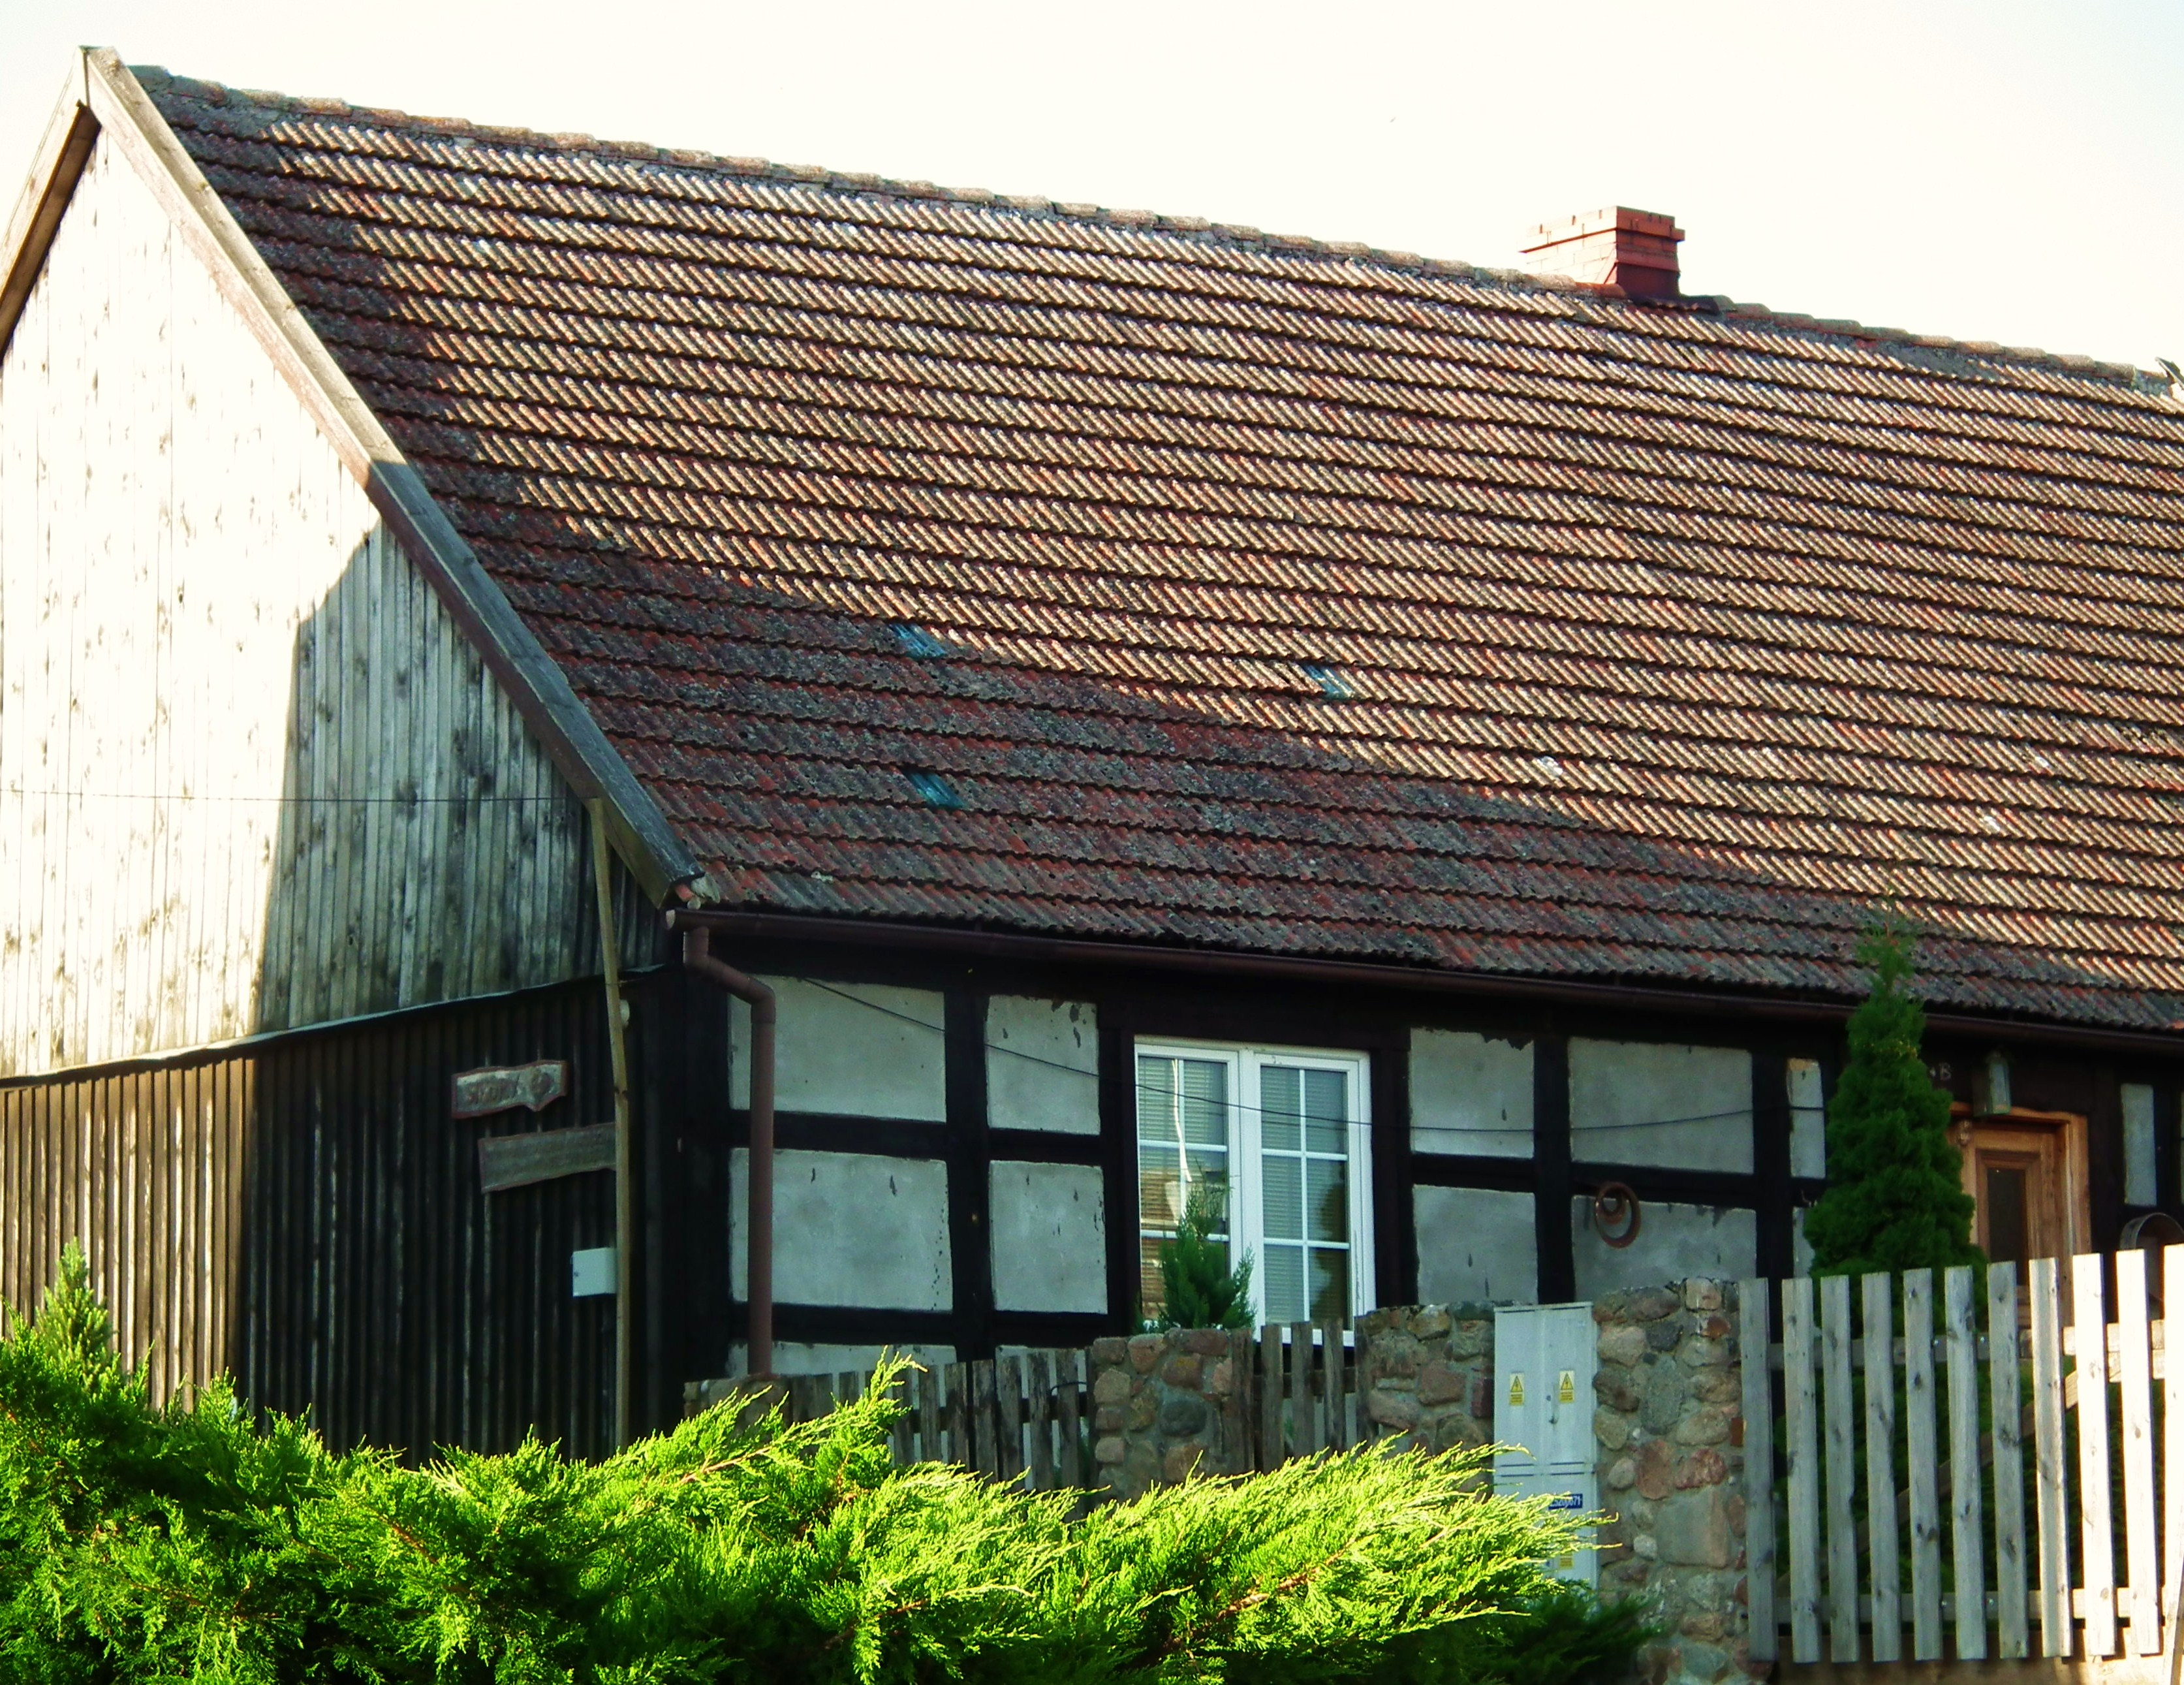 File:Timber framing in Sikory.jpg - Wikimedia Commons